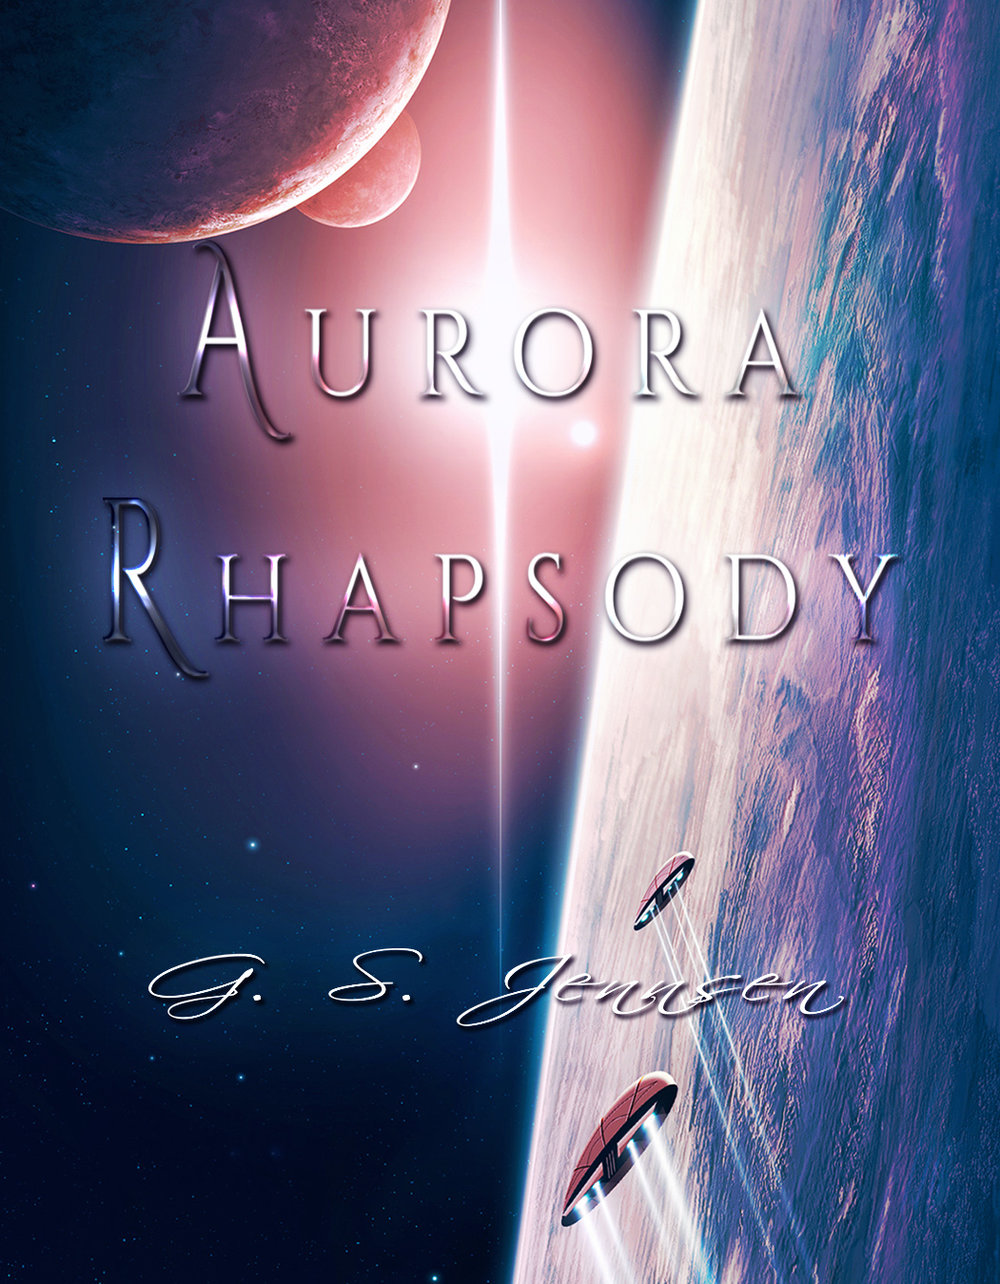 AURORA RHAPSODY WINE LABEL    Size: 4.5 inches x 3.5 inches